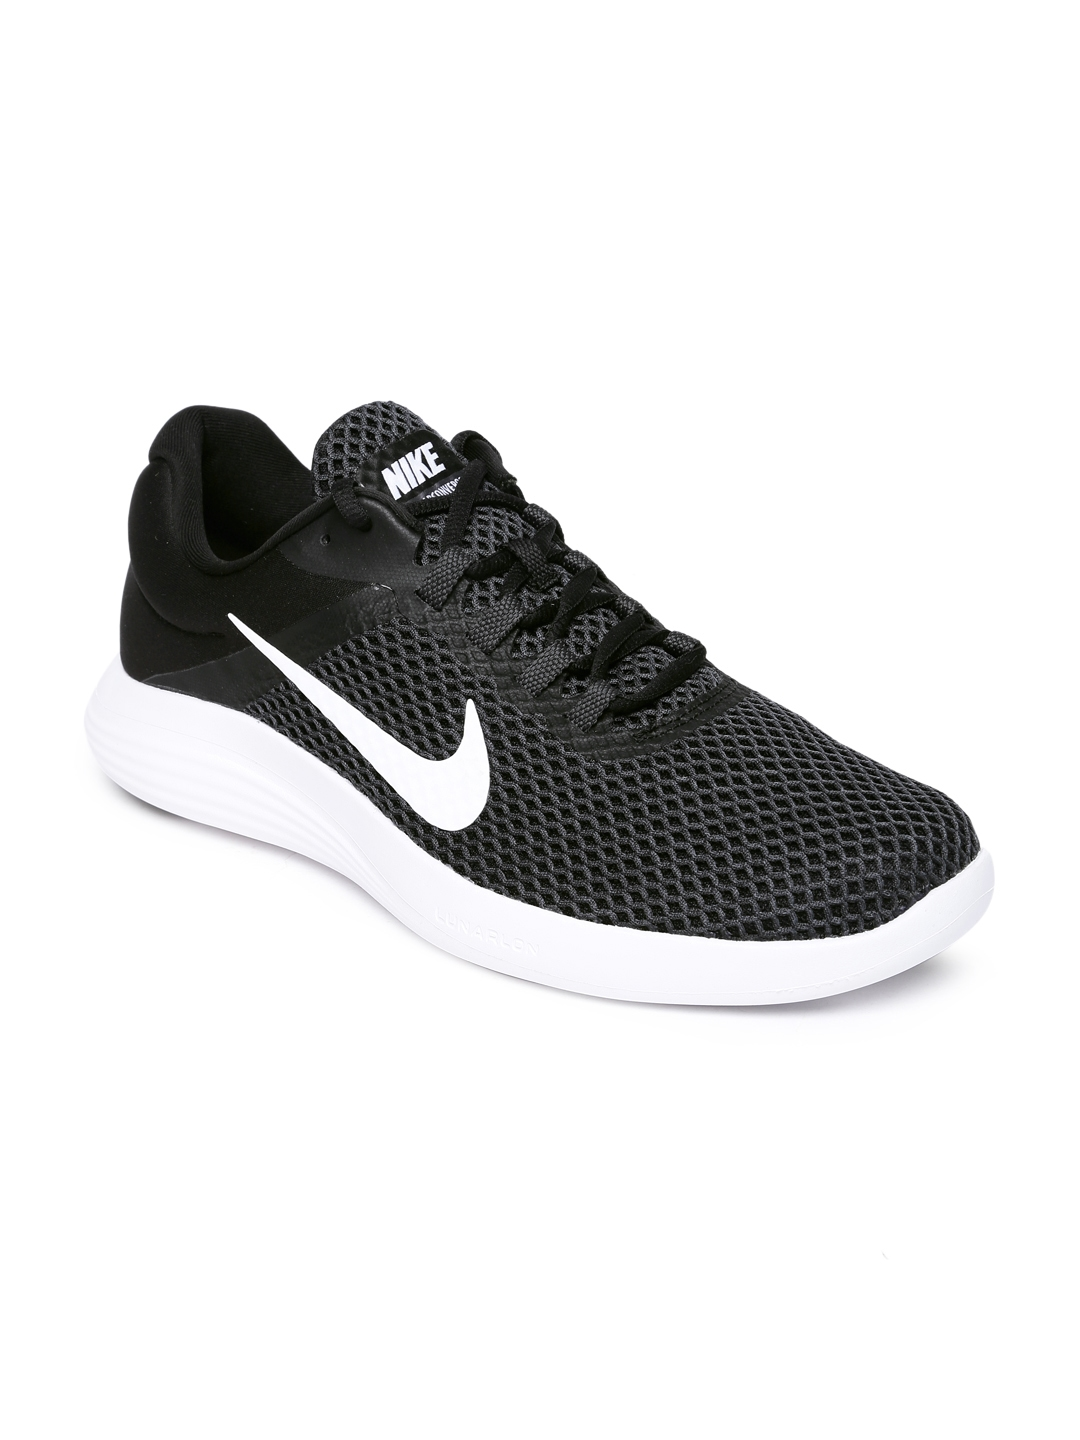 83a09795882b Buy Nike Men Black Lunar Converge 2 Running Shoe - Sports Shoes for ...